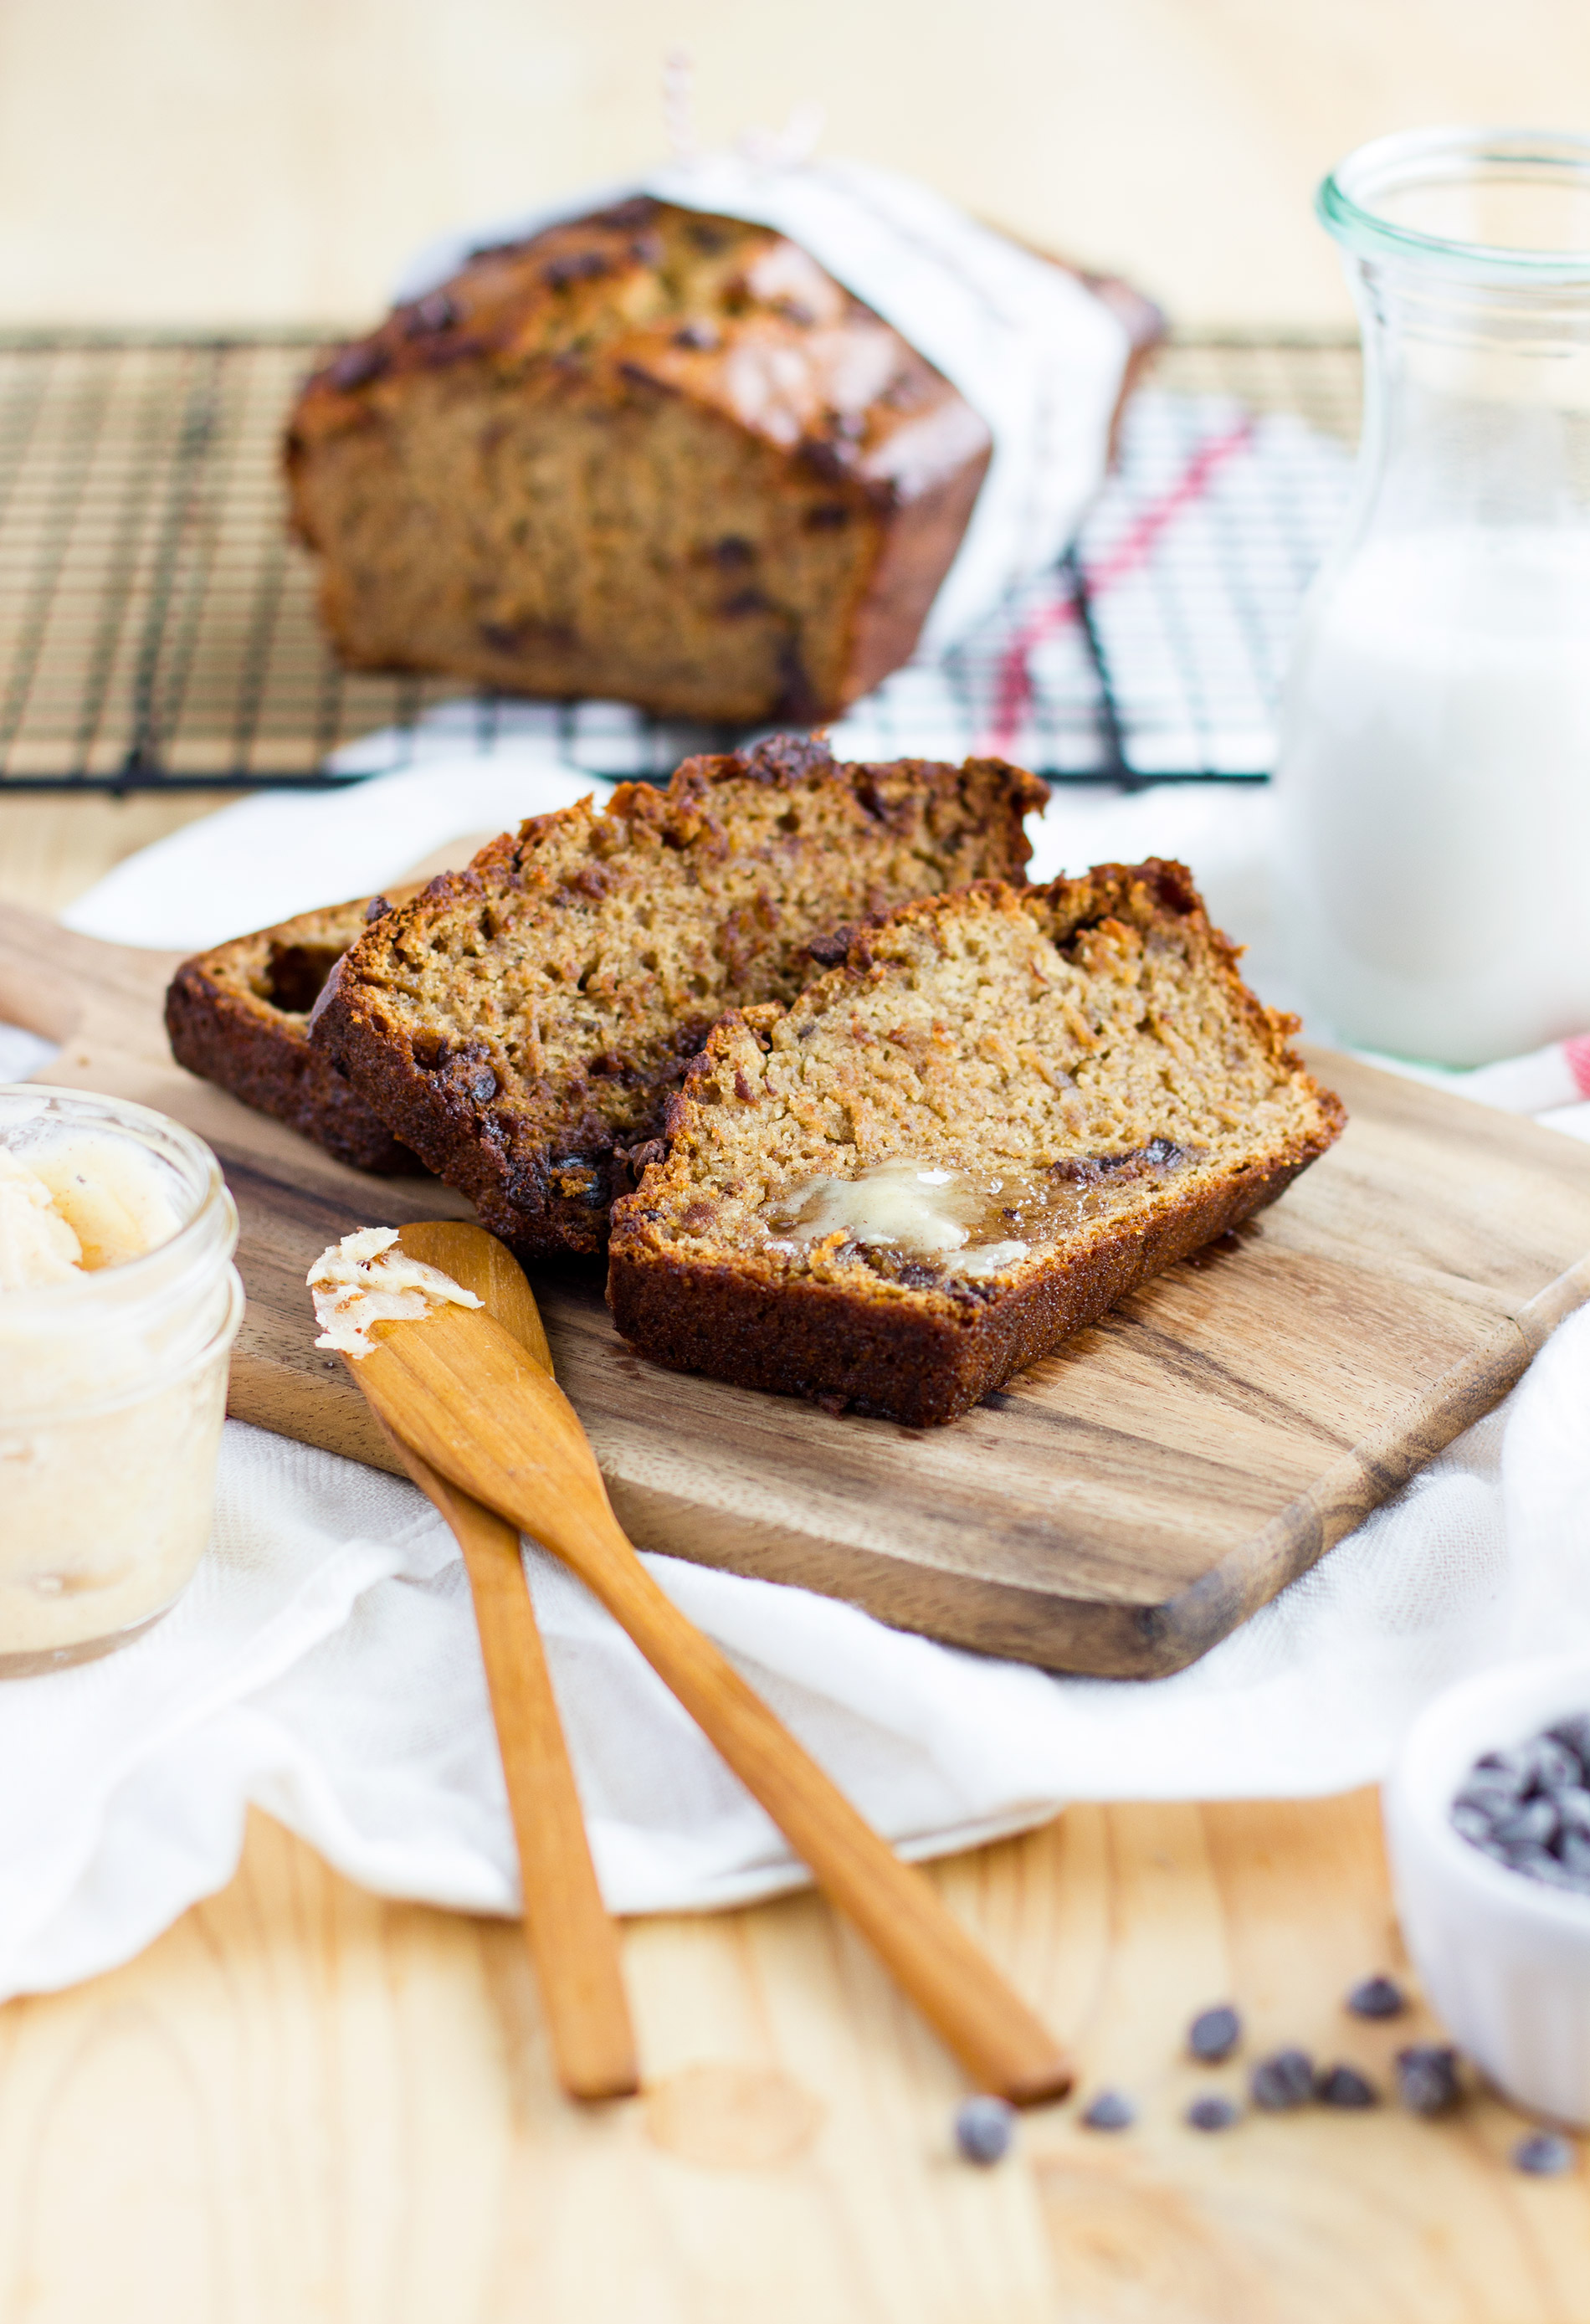 Best Ever Chocolate Chip Banana Bread Recipe